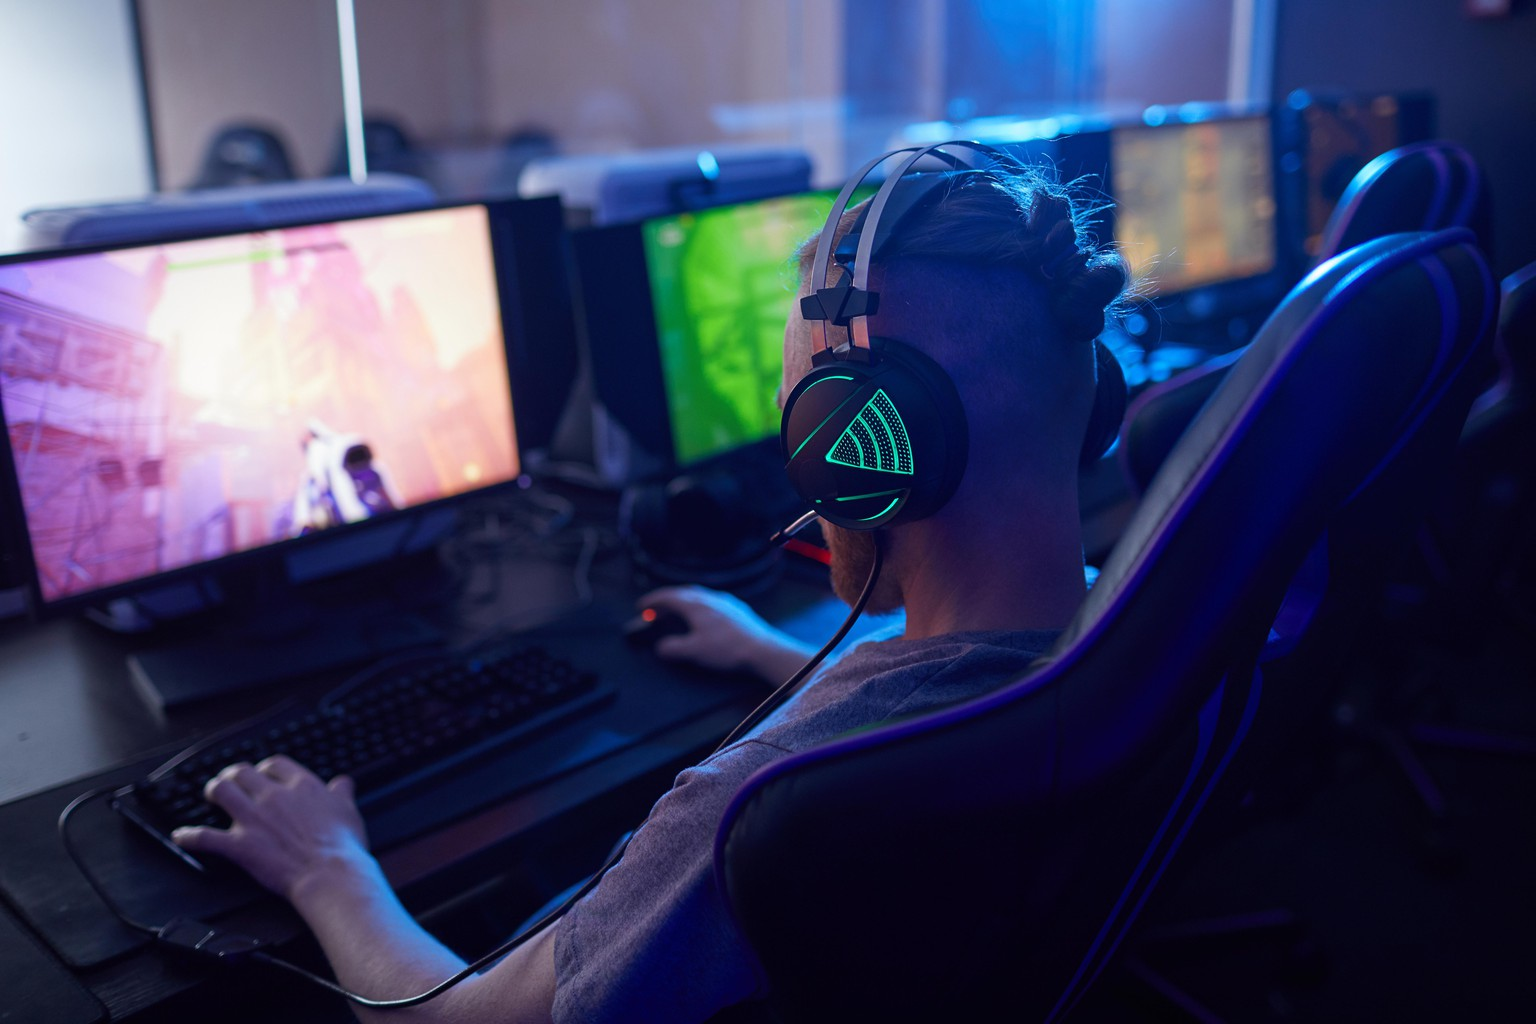 Rear view of young gamer wearing gaming headphones with backlight and playing in computer video game on computer in dark computer class